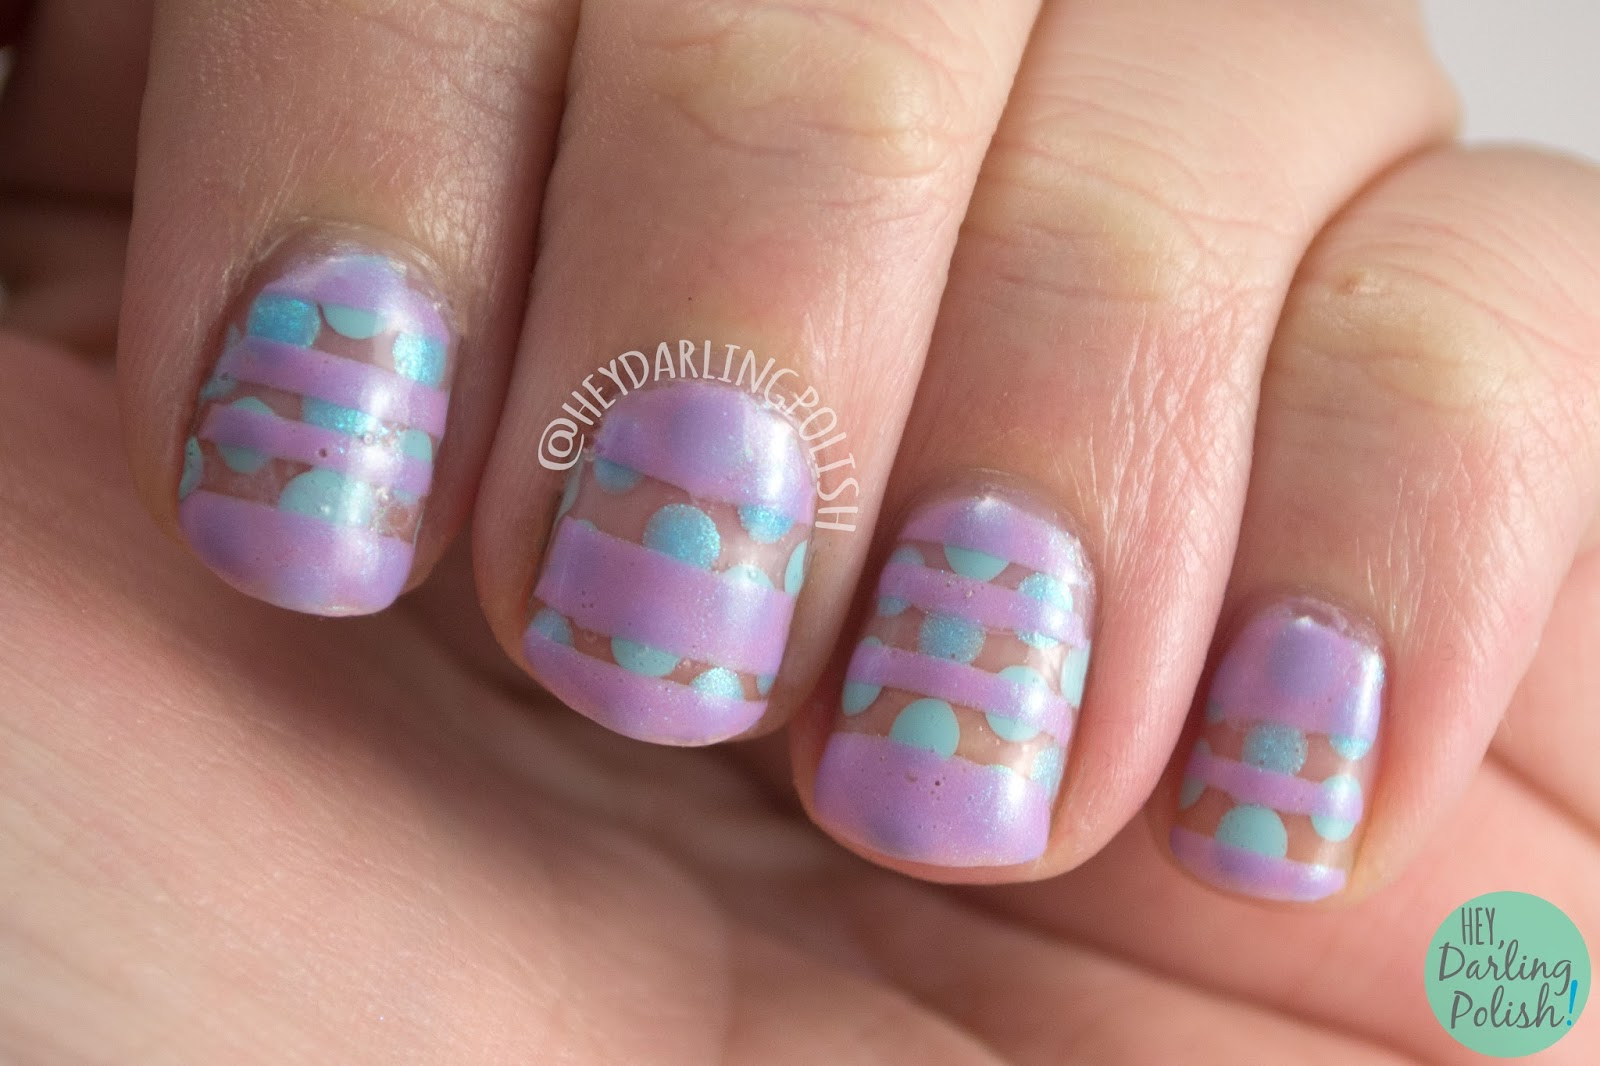 nails, nail art, nail polish, polka dots, stripes, pastels, hey darling polish, 52 week challenge, purple, blue